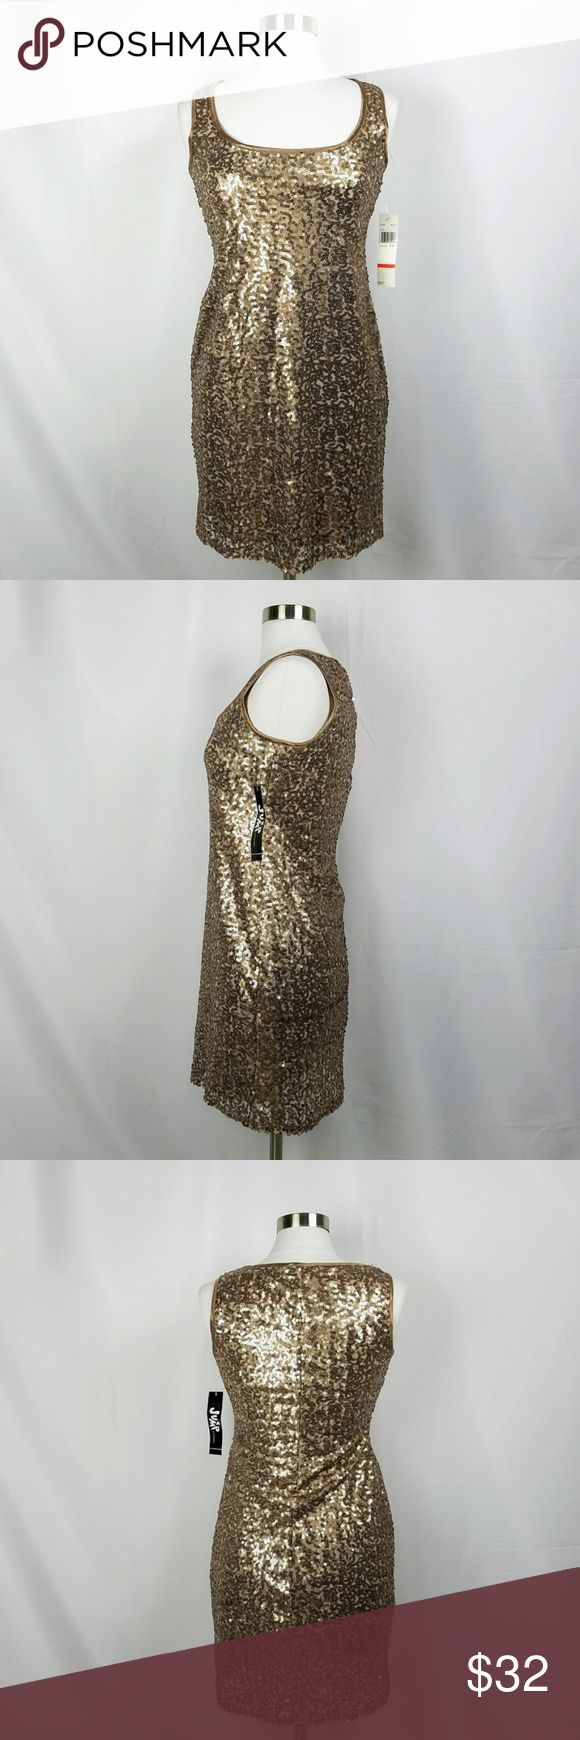 """Jump Girl Bronze Sequin Sleeveless Dress [NWT] Jump Girl Cut # 49777  100% polyester sleeveless dress covered in bronze- colored sequins Lined Size: 7/8 Pull-on styling  Flat measurements (approx) Bust: 16 3/4"""" Waist: 15"""" Hips: 18 1/2"""" Width at hem: 19"""" Length, nape to hem: 34 1/4""""  NEW WITH TAGS Jump Dresses Mini"""